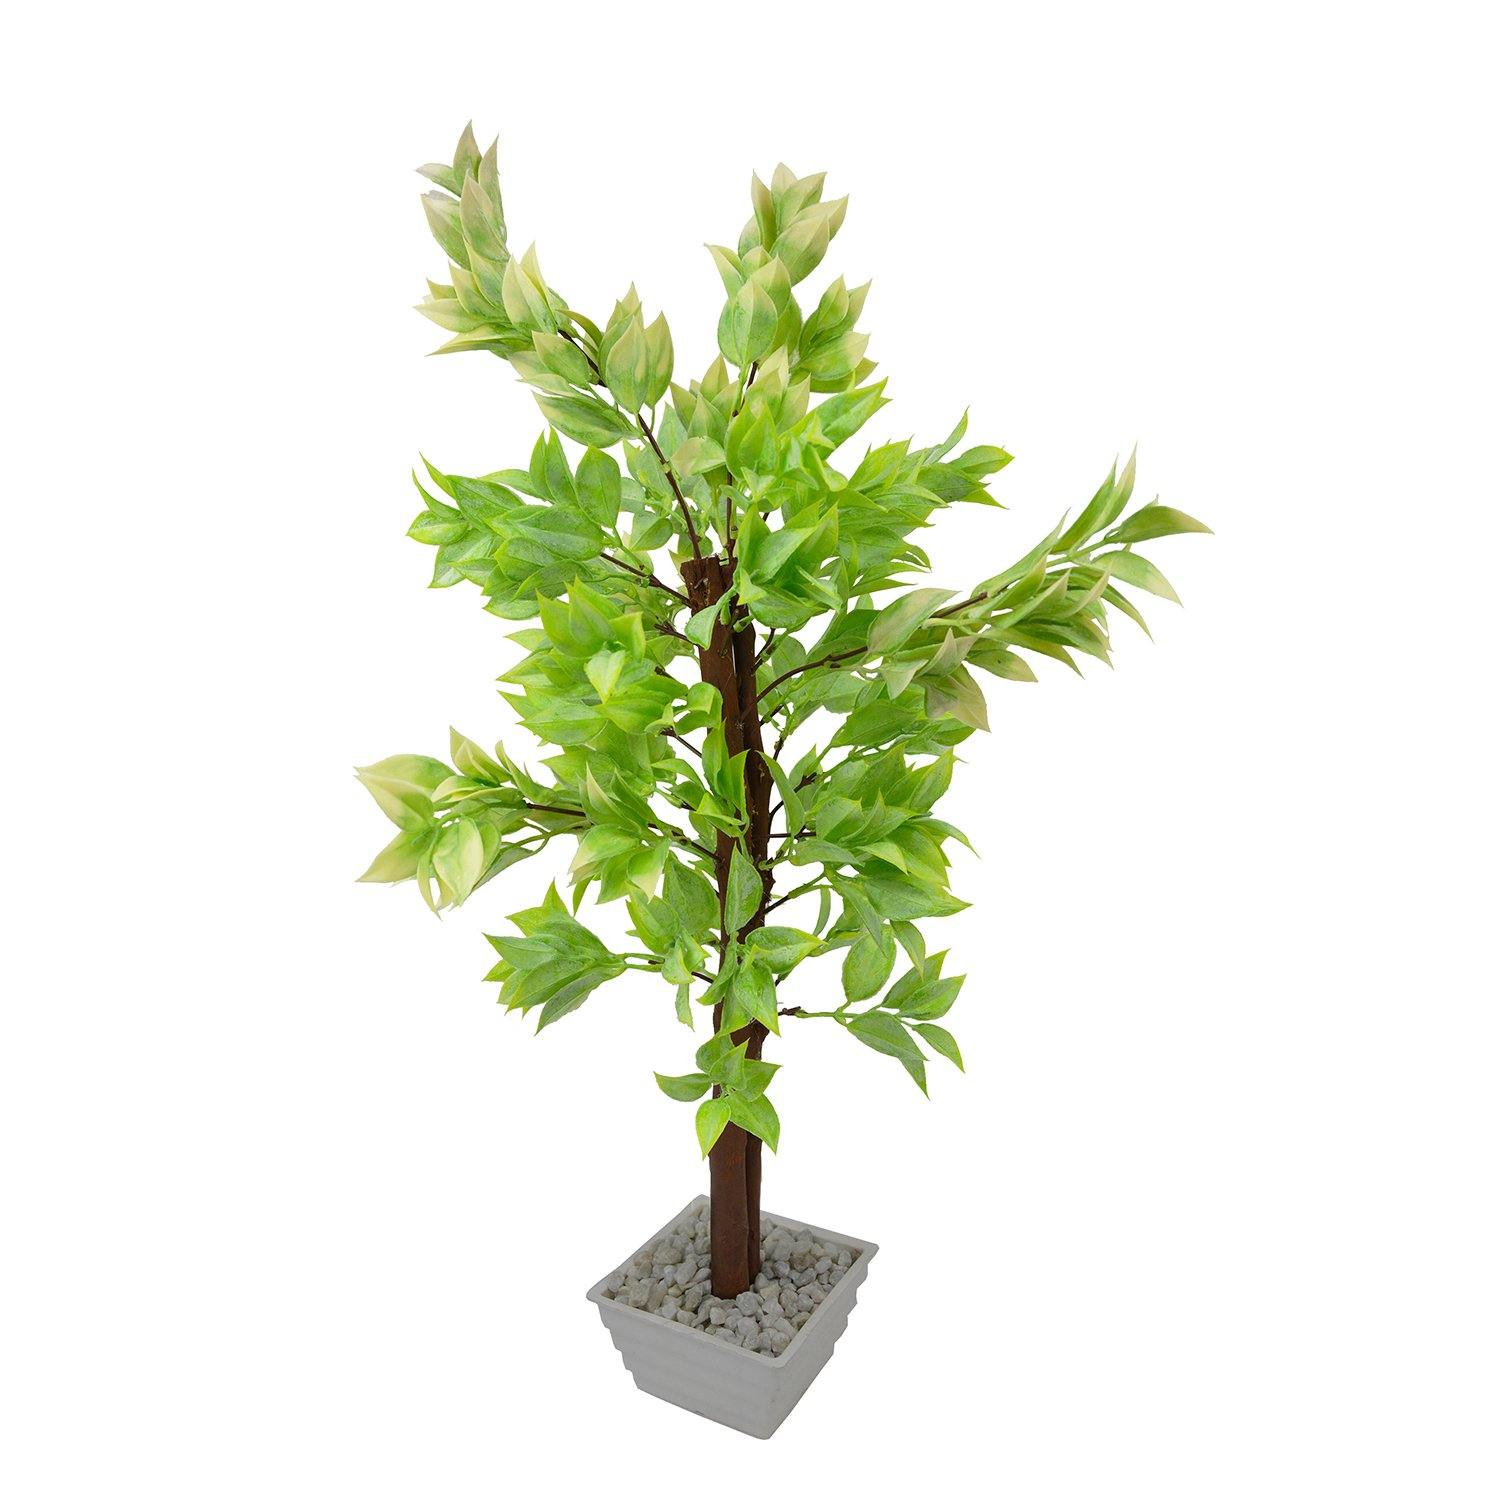 Artificial Latex Leaves Bonsai Tree with White Square pot